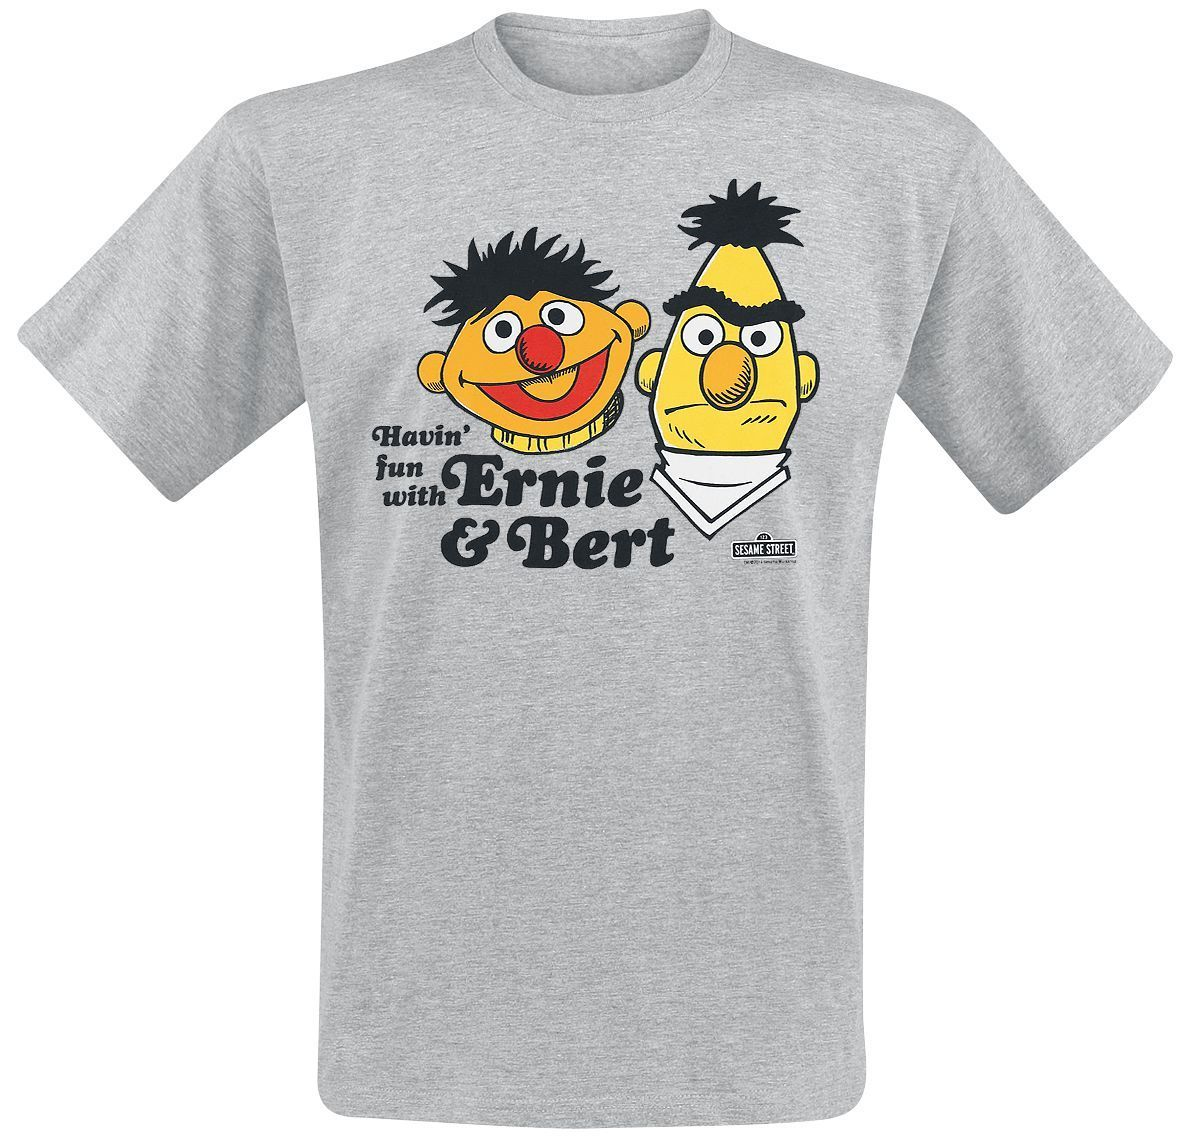 c4be4cc176fd0 Sesame Street Ernie   Bert T-Shirt mottled grey Cartoon t shirt men Unisex  New